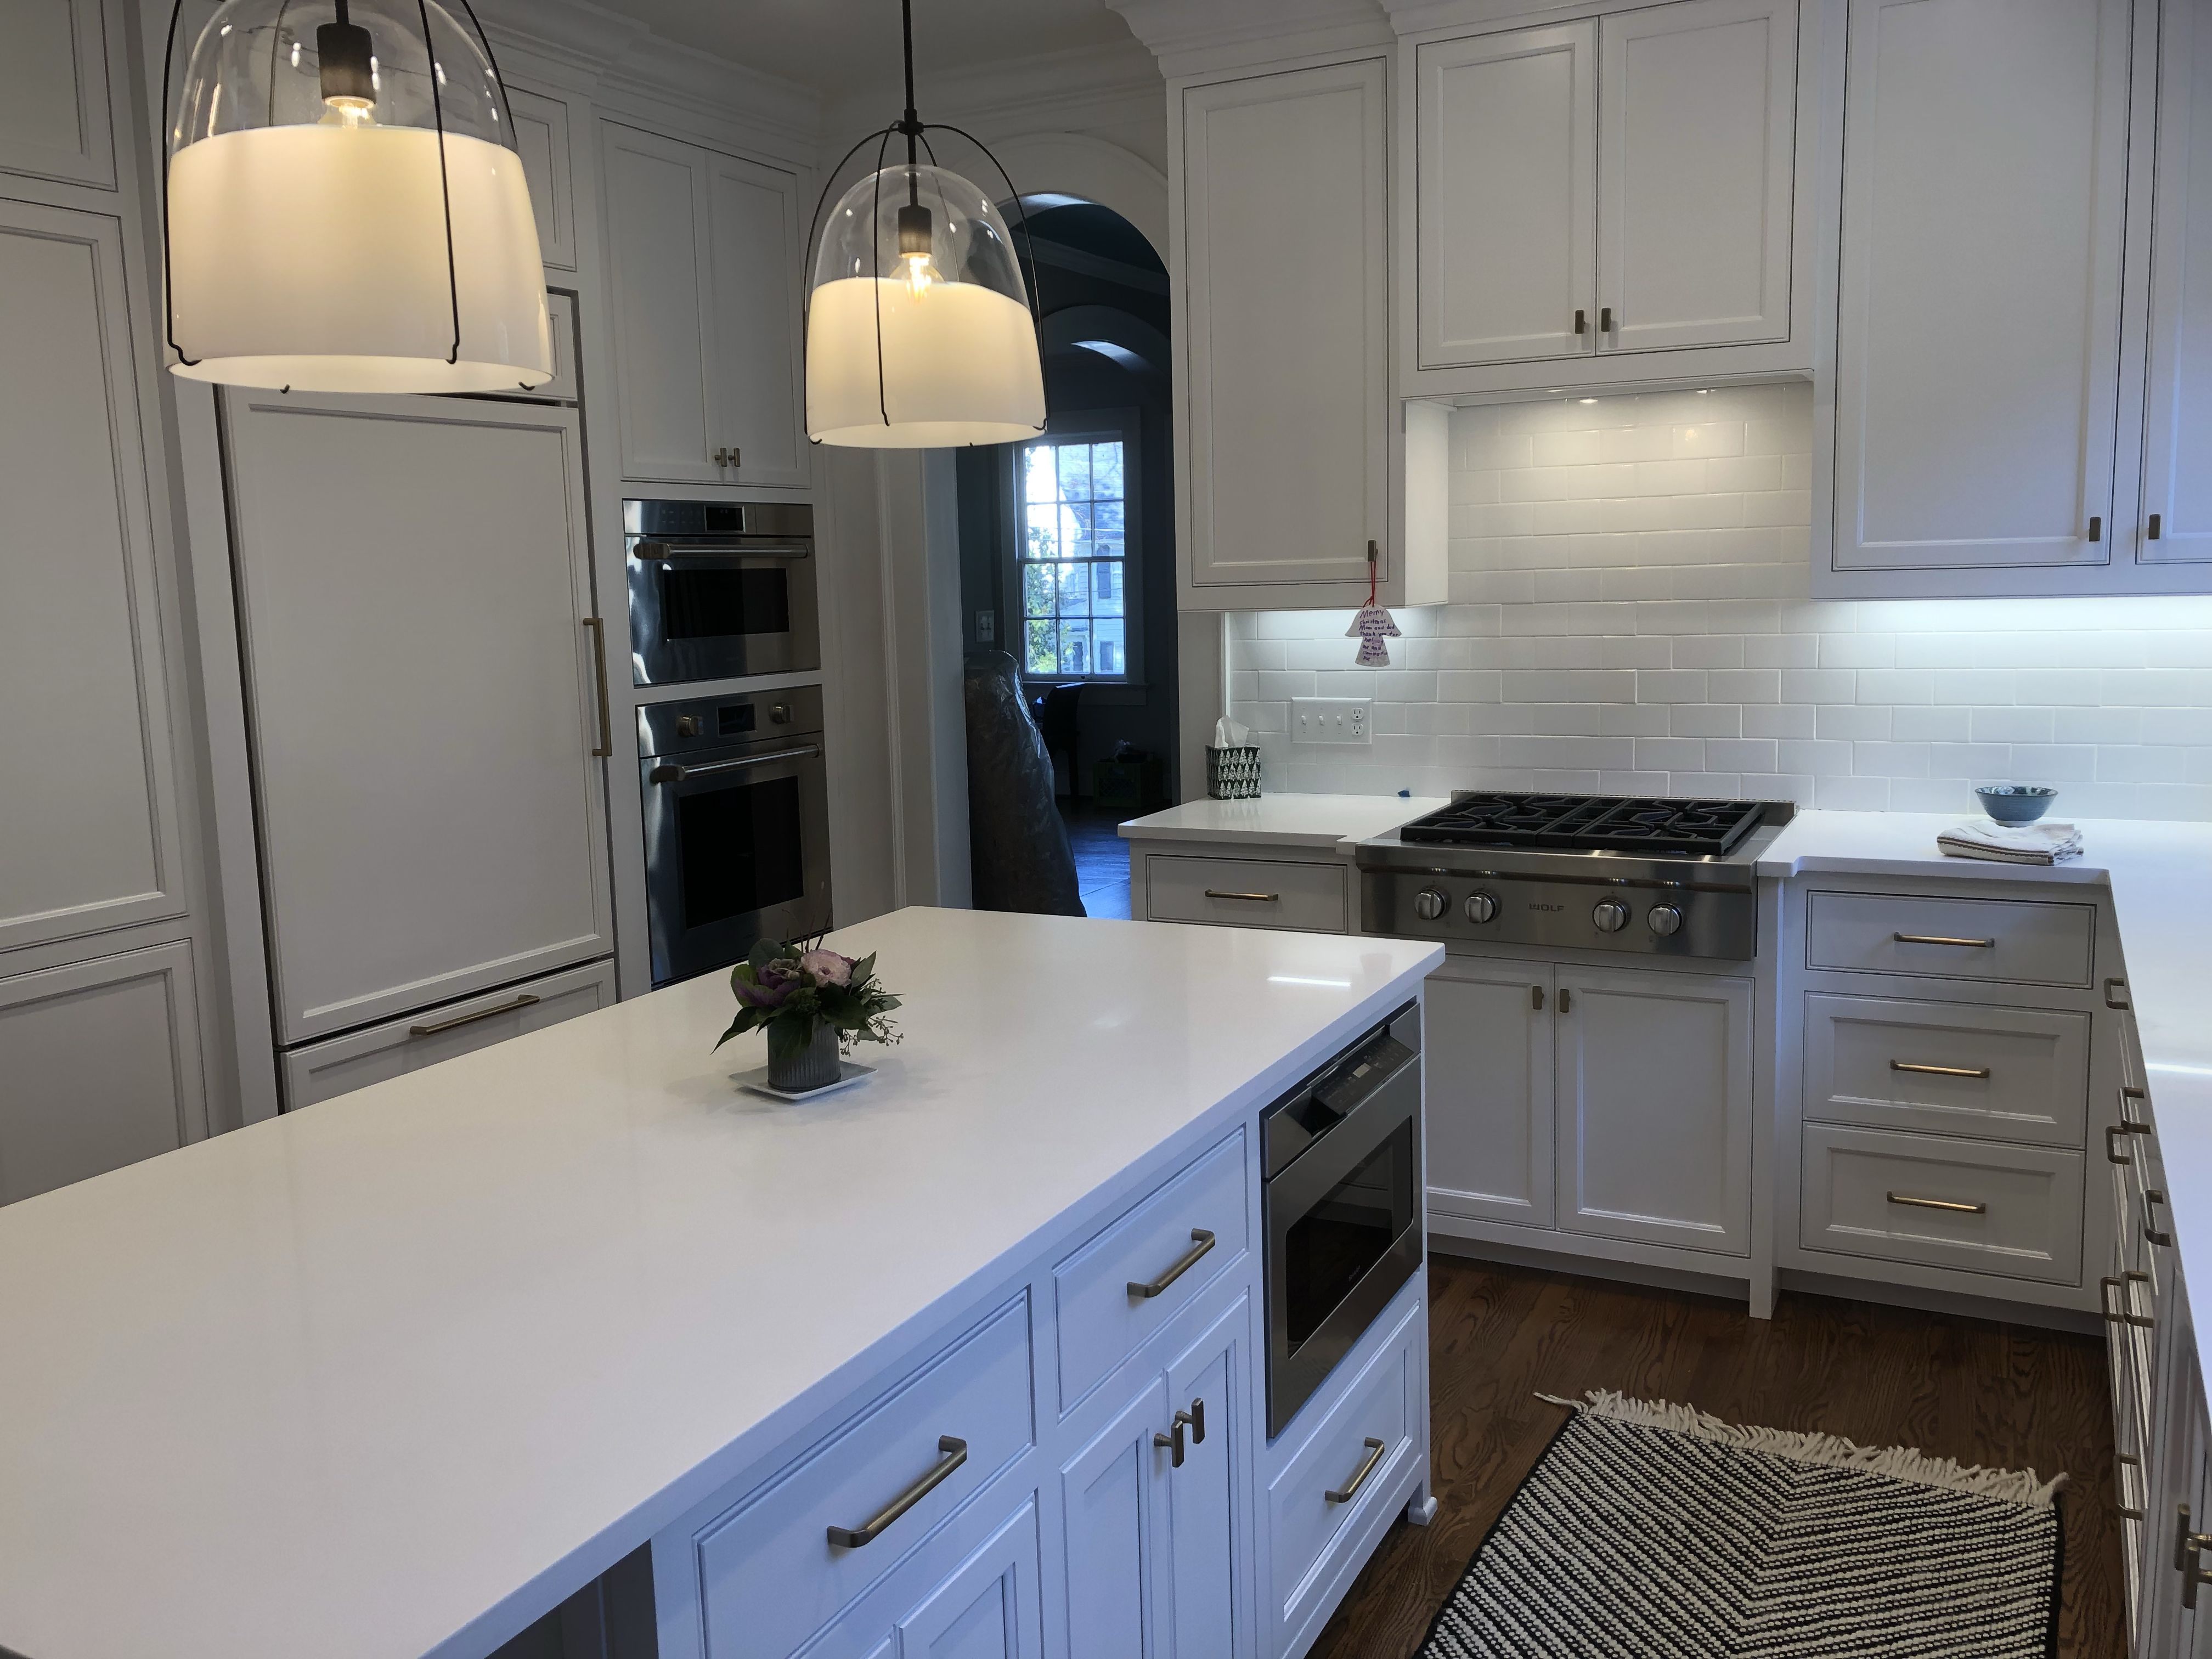 Finished Kitchen Chantilly Lace White Cabinets With Inset Shaker Style Doors And Drawer Fronts Shaker Style Doors Kitchen New Kitchen